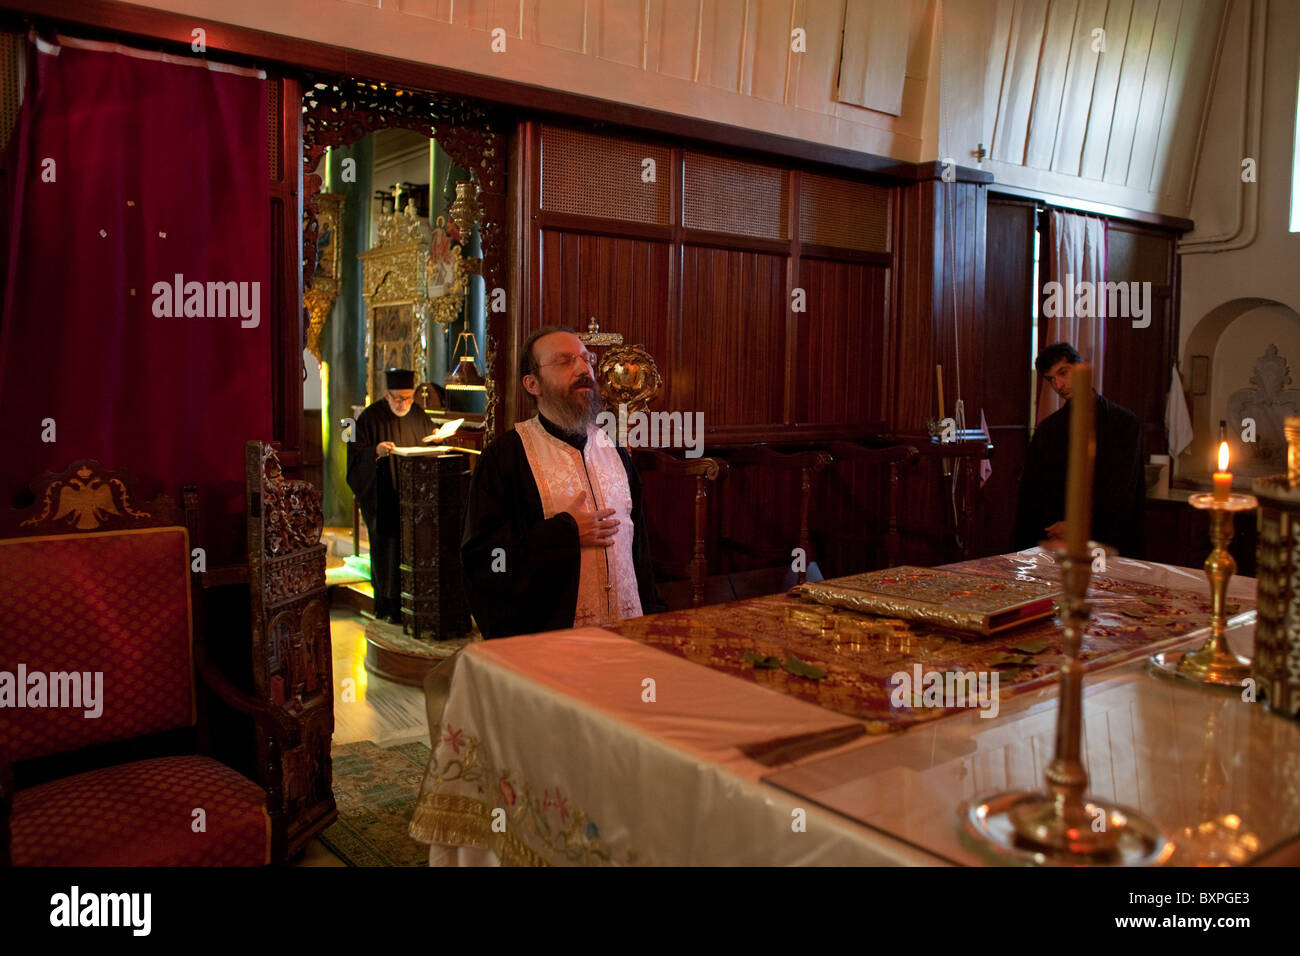 Priest during a mass at the altar in the Church of the Holy Trinity, Heybeliada, Turkey - Stock Image